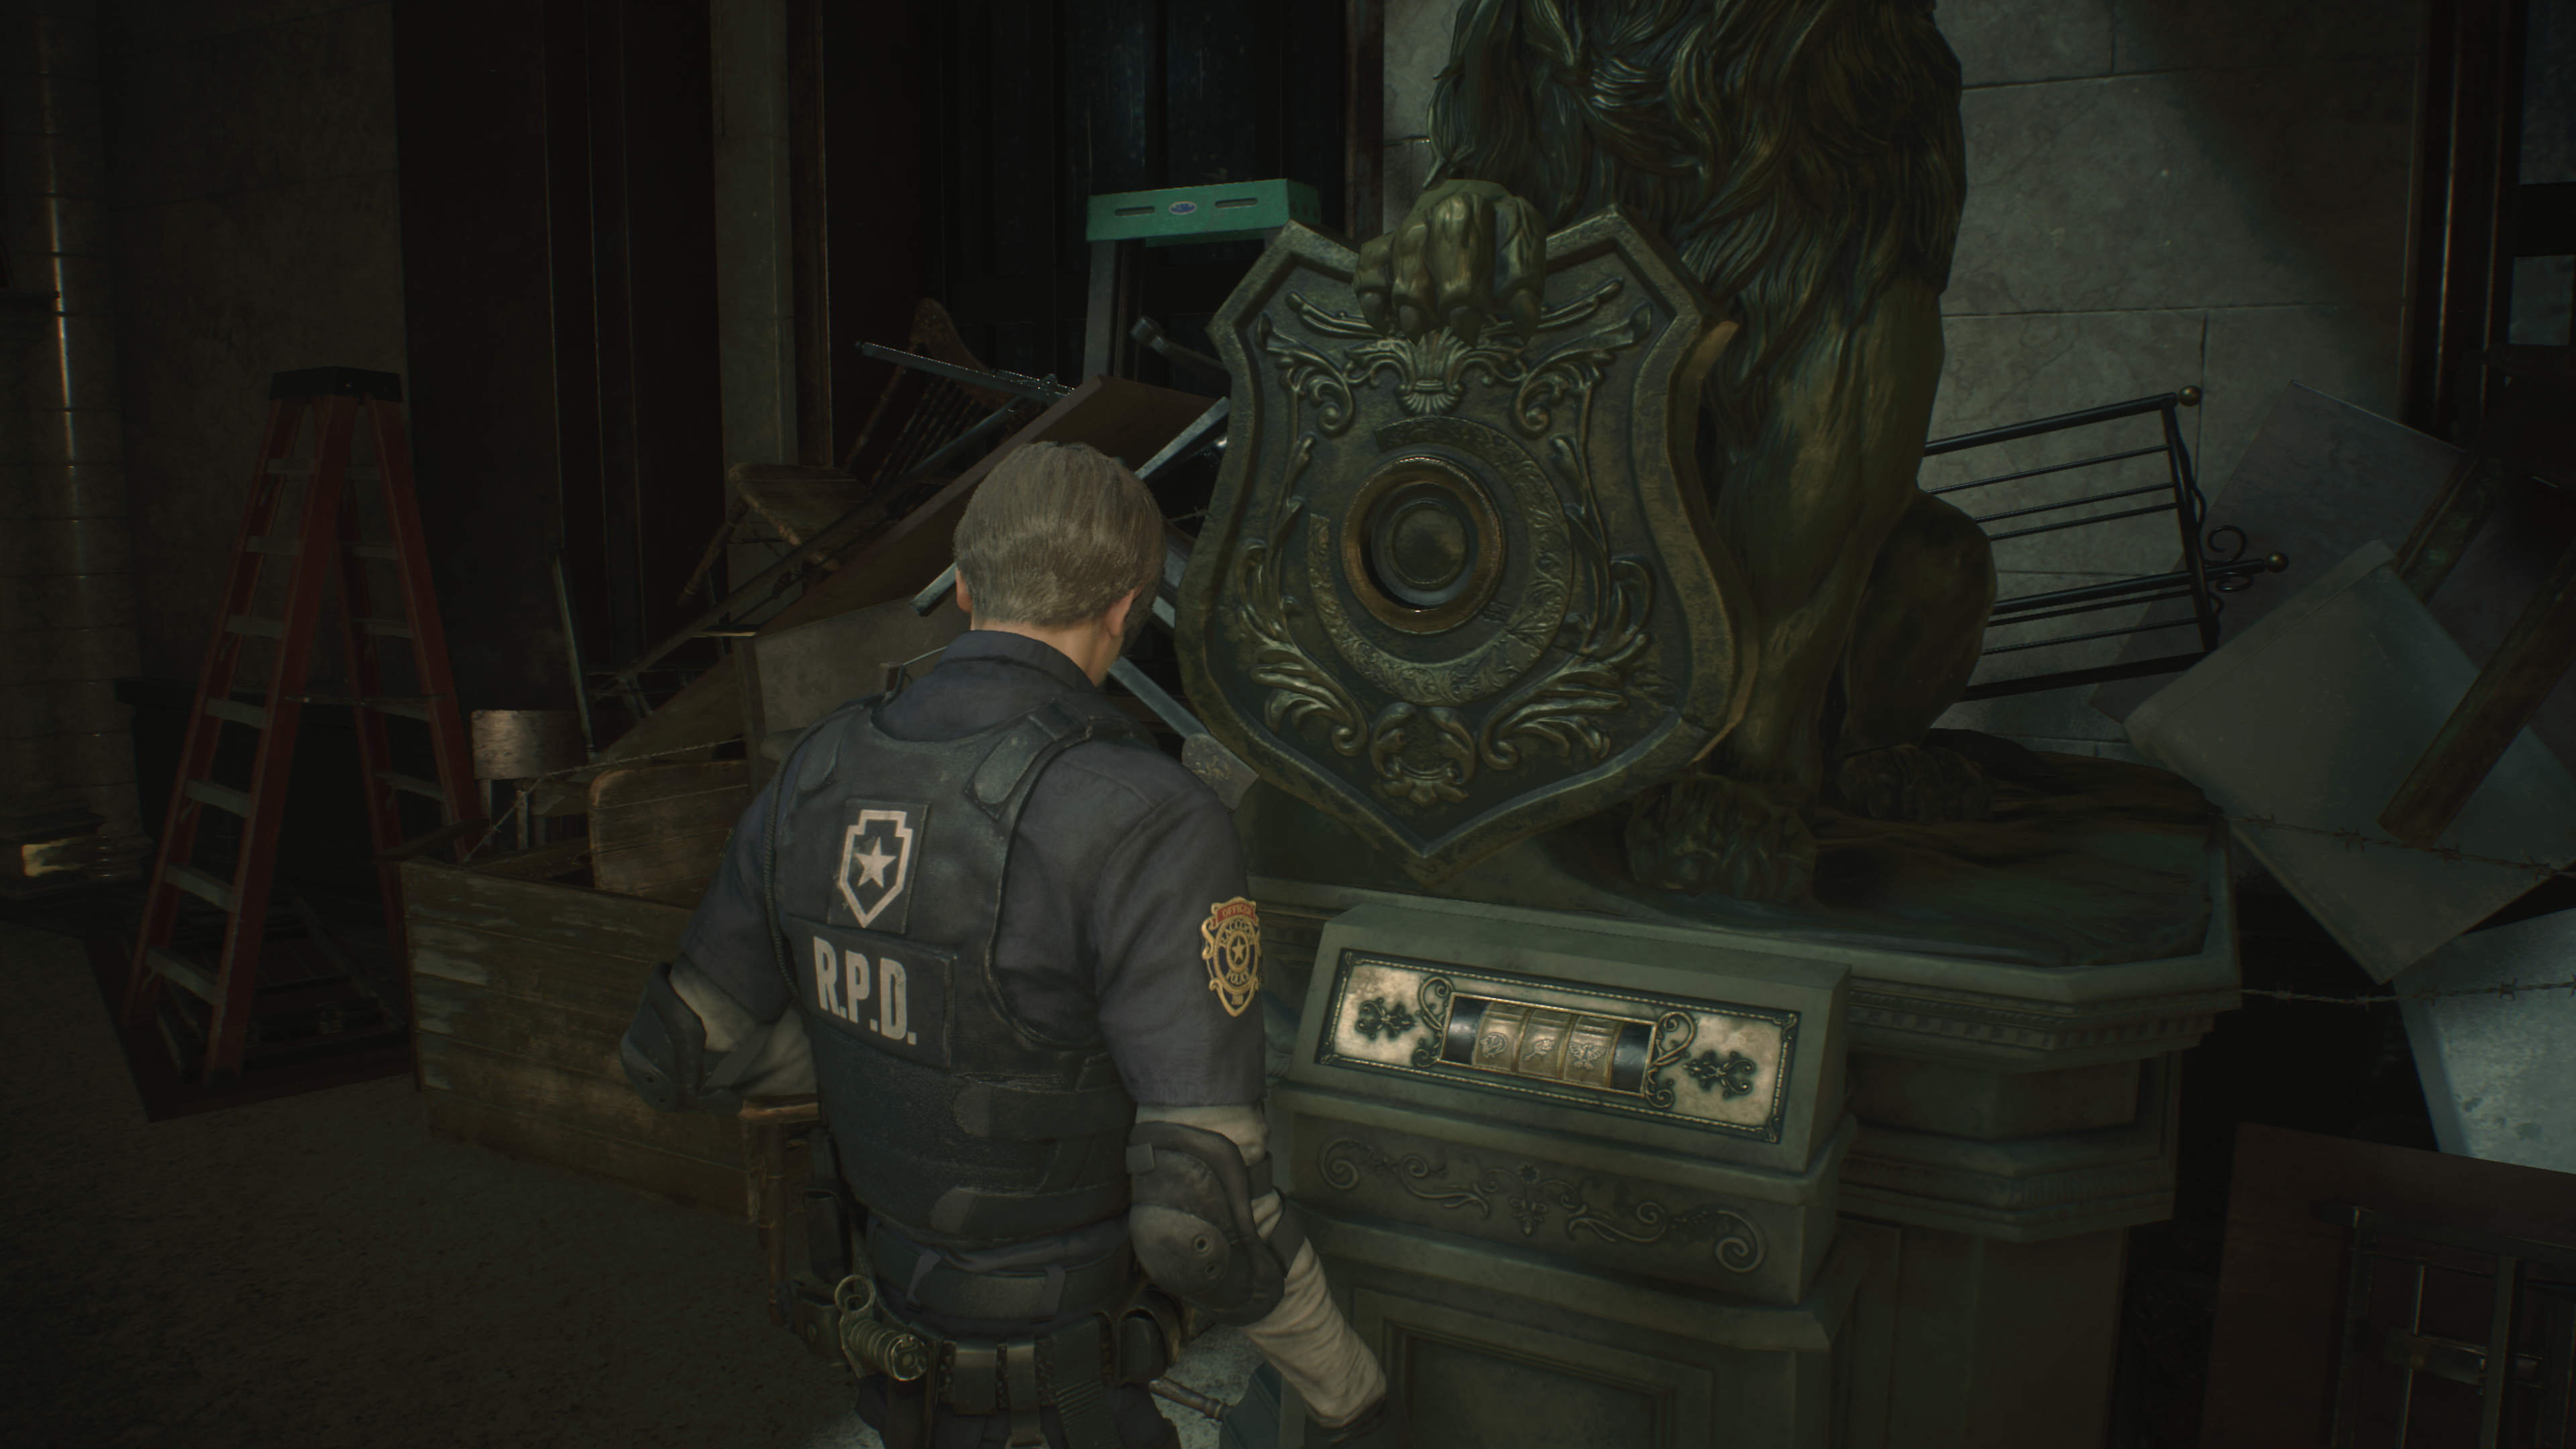 Resident Evil 2 Remake: where to find three medallions - lion